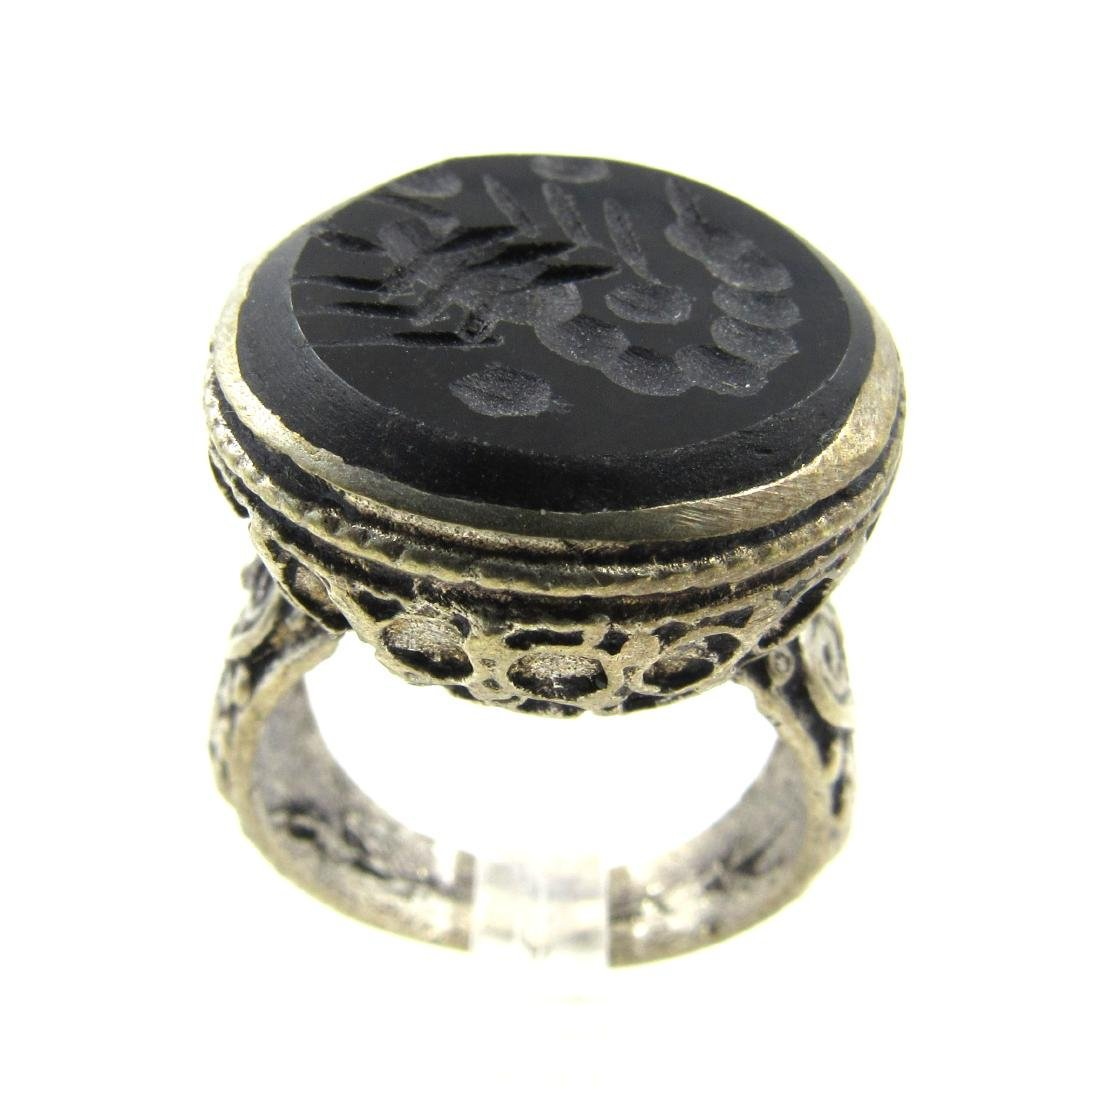 Post Medieval Silver Ring with Scorpion on Intaglio - 2